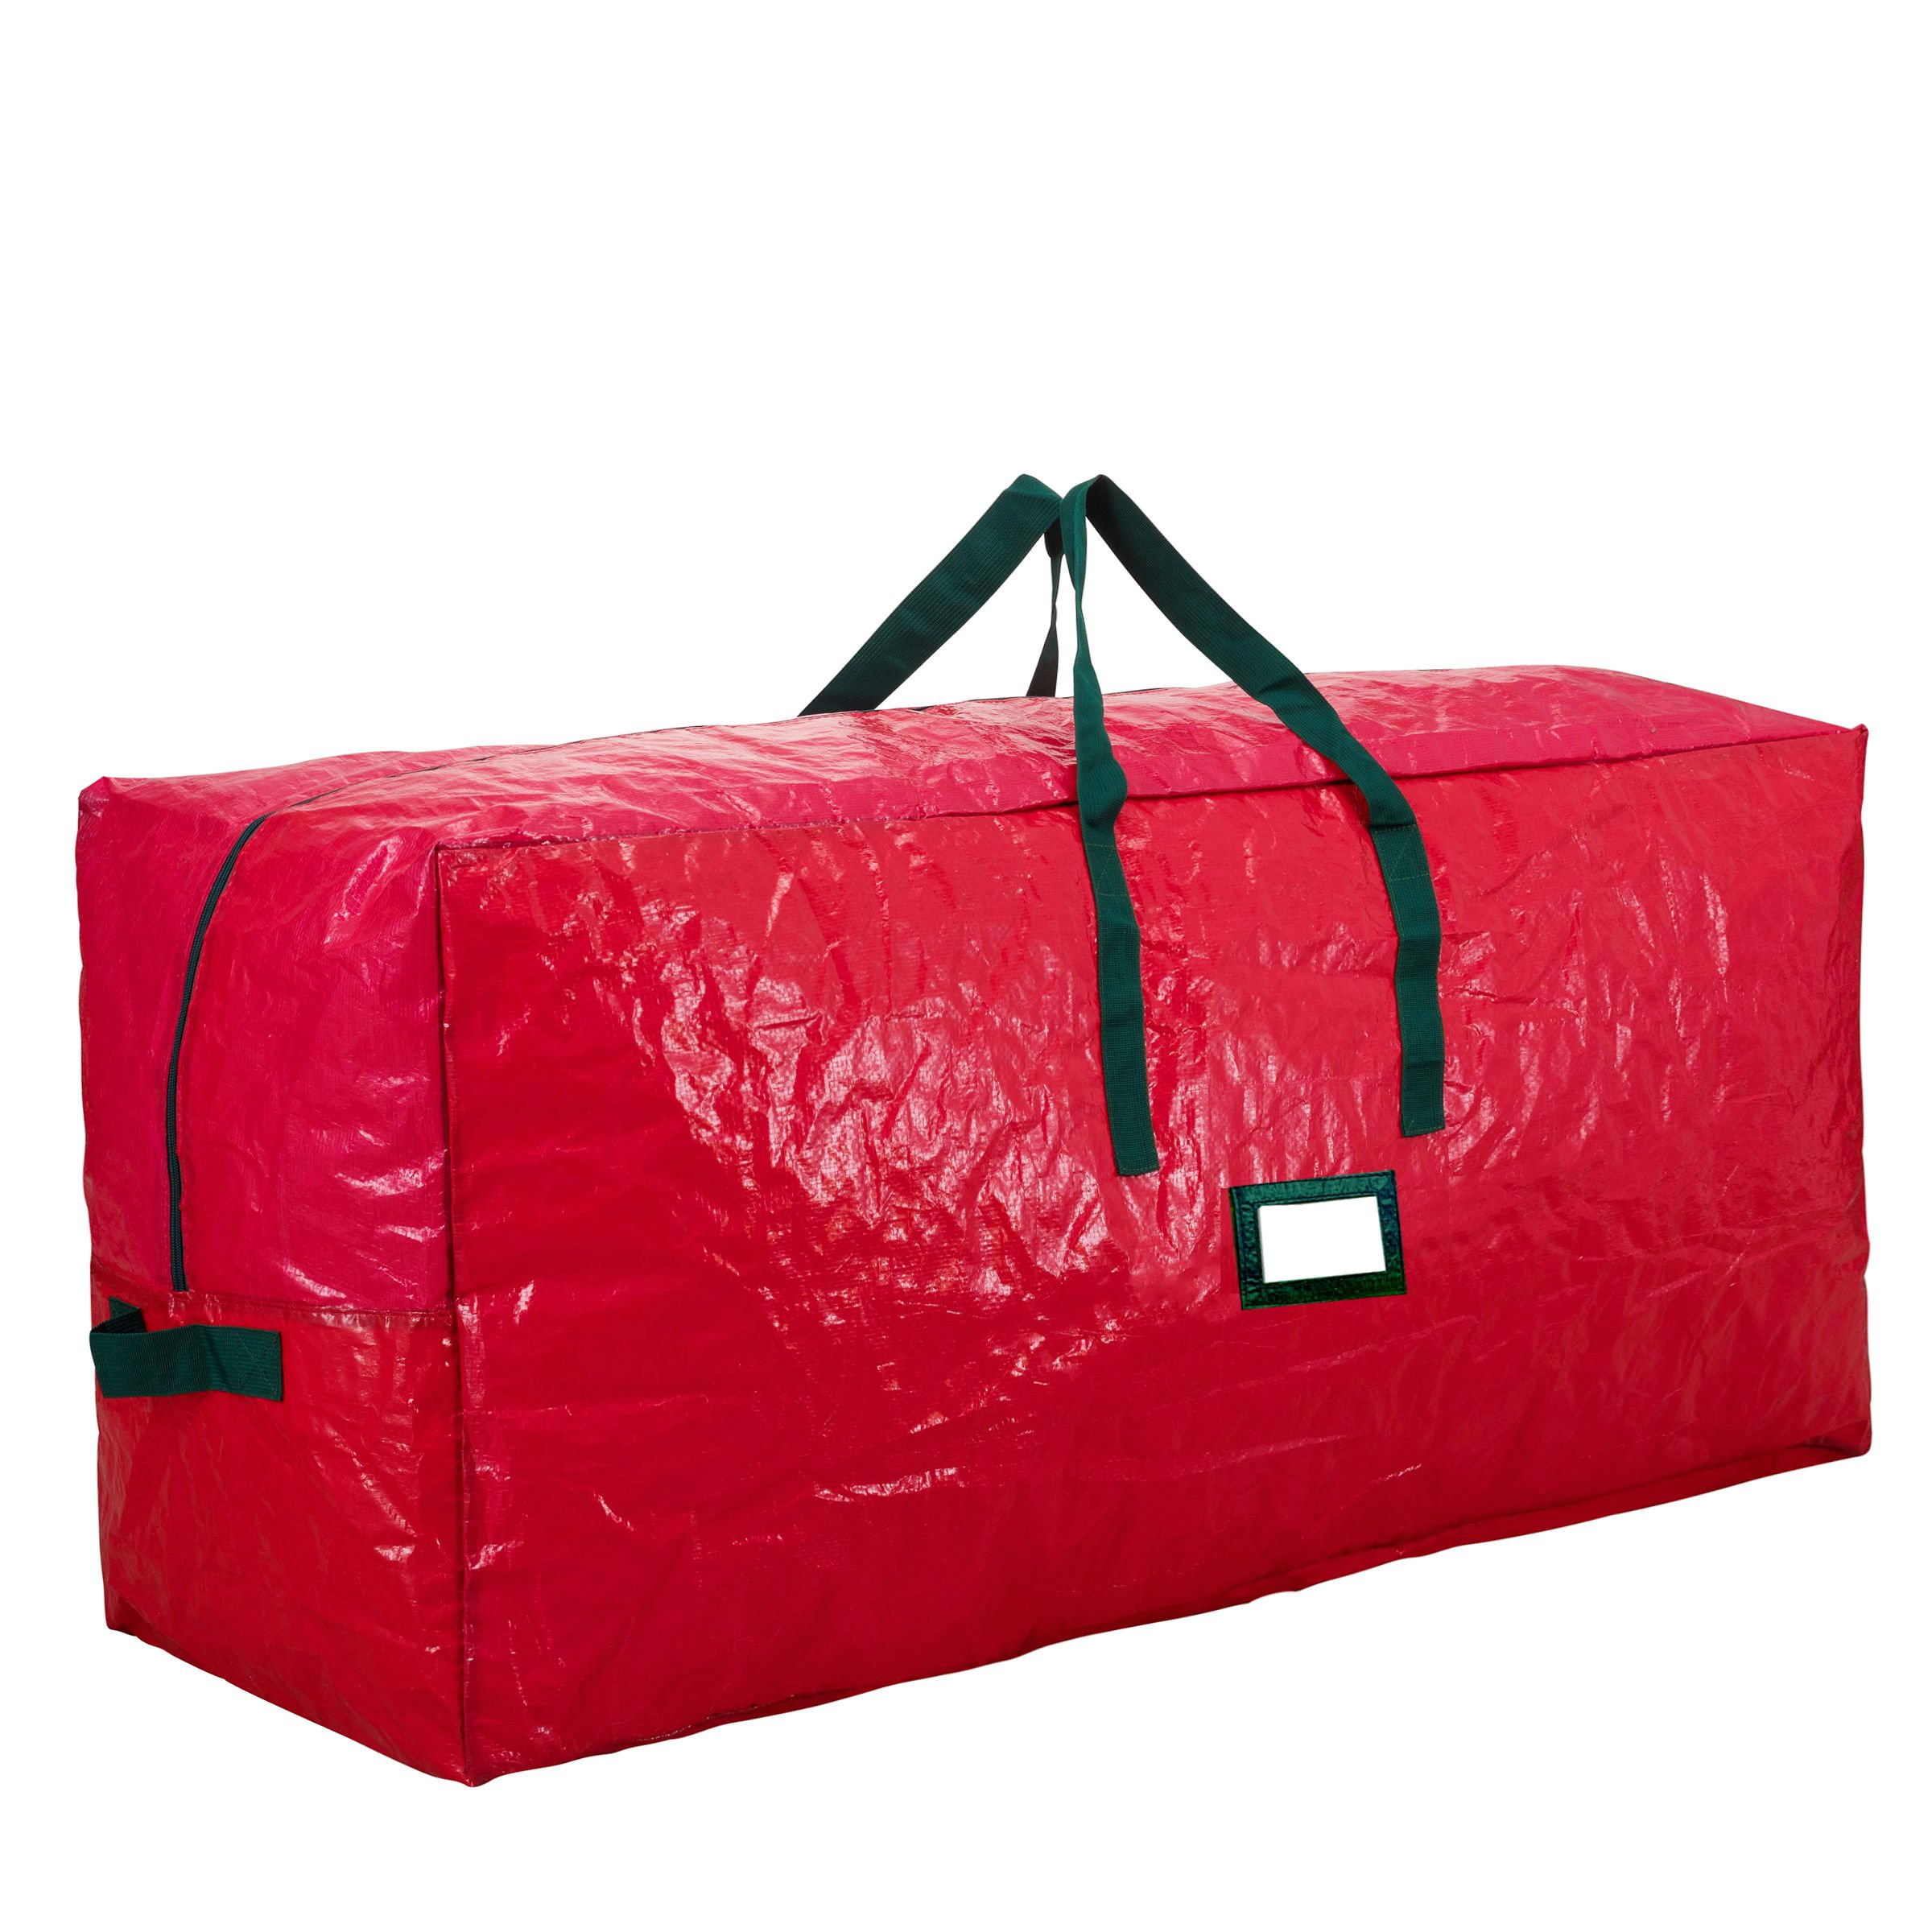 Premium Red Large Holiday Christmas Tree Storage Bag-Fits Trees Up To 7 Feet Tall-Tear Resistant Zippered Bag with Reinforced Handles -48'' L x 20'' W x 15'' D (Red)